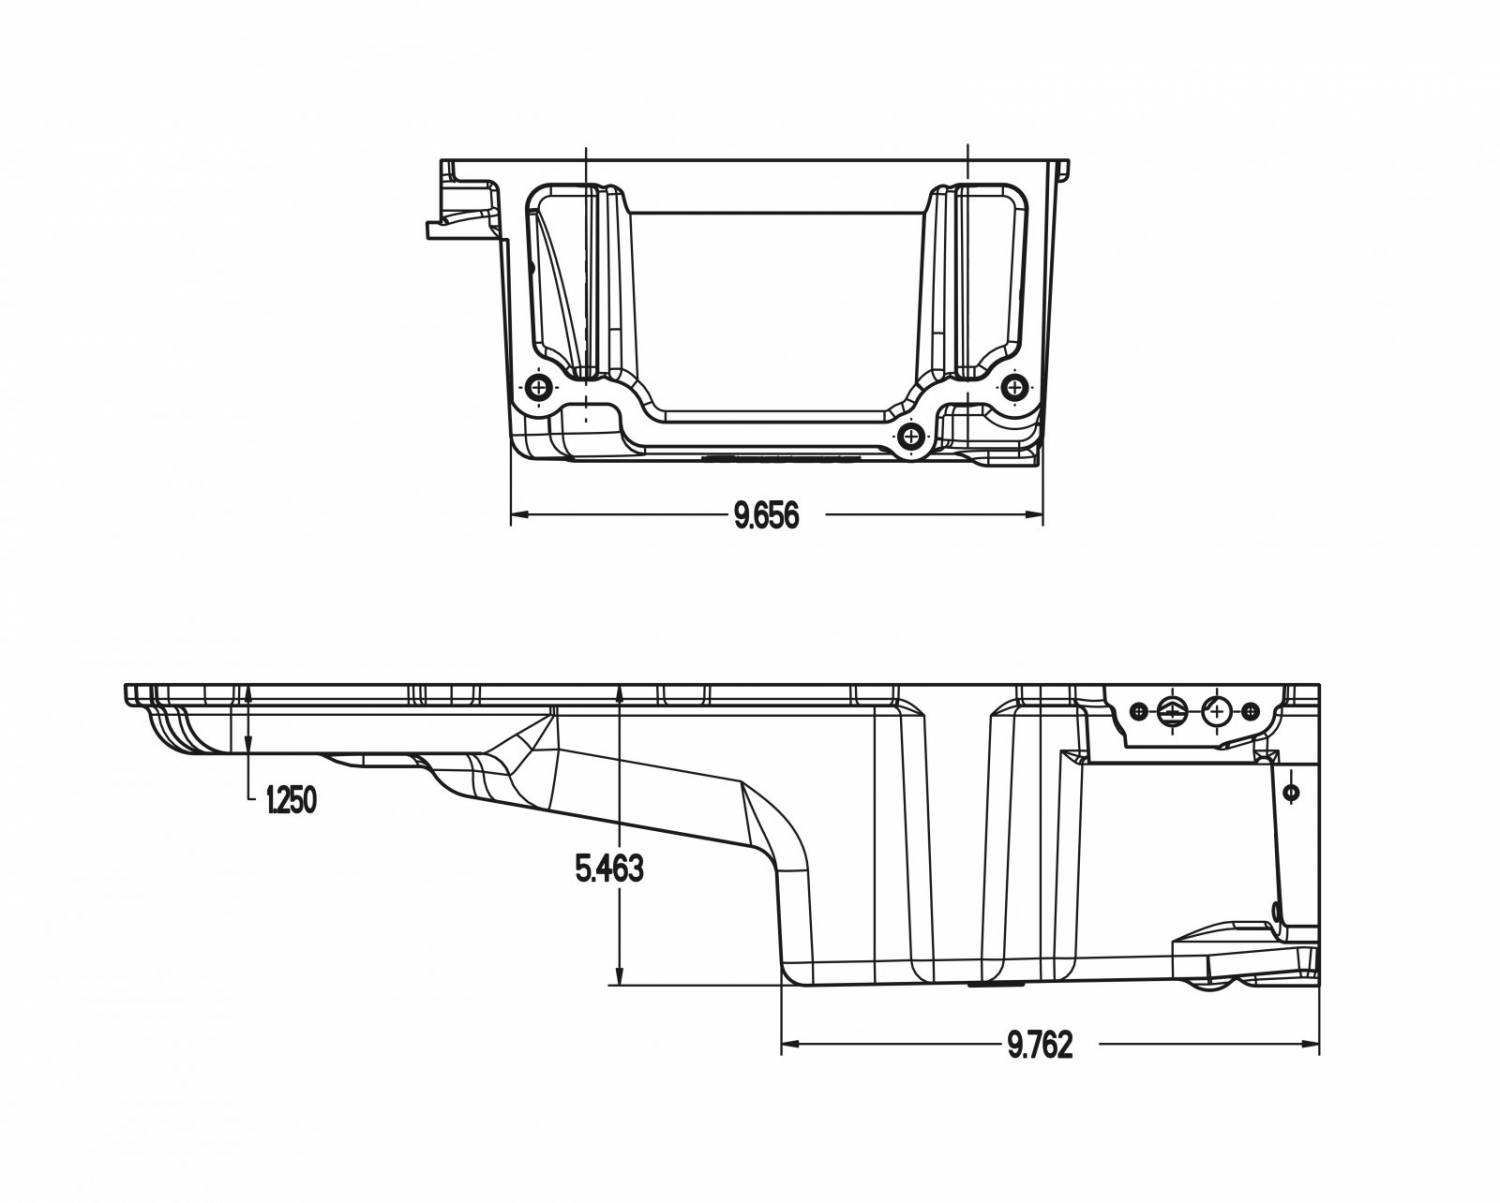 Gmp 302 2k Complete Low Profile Holley Ls Retro Fit Oil Pan Kit